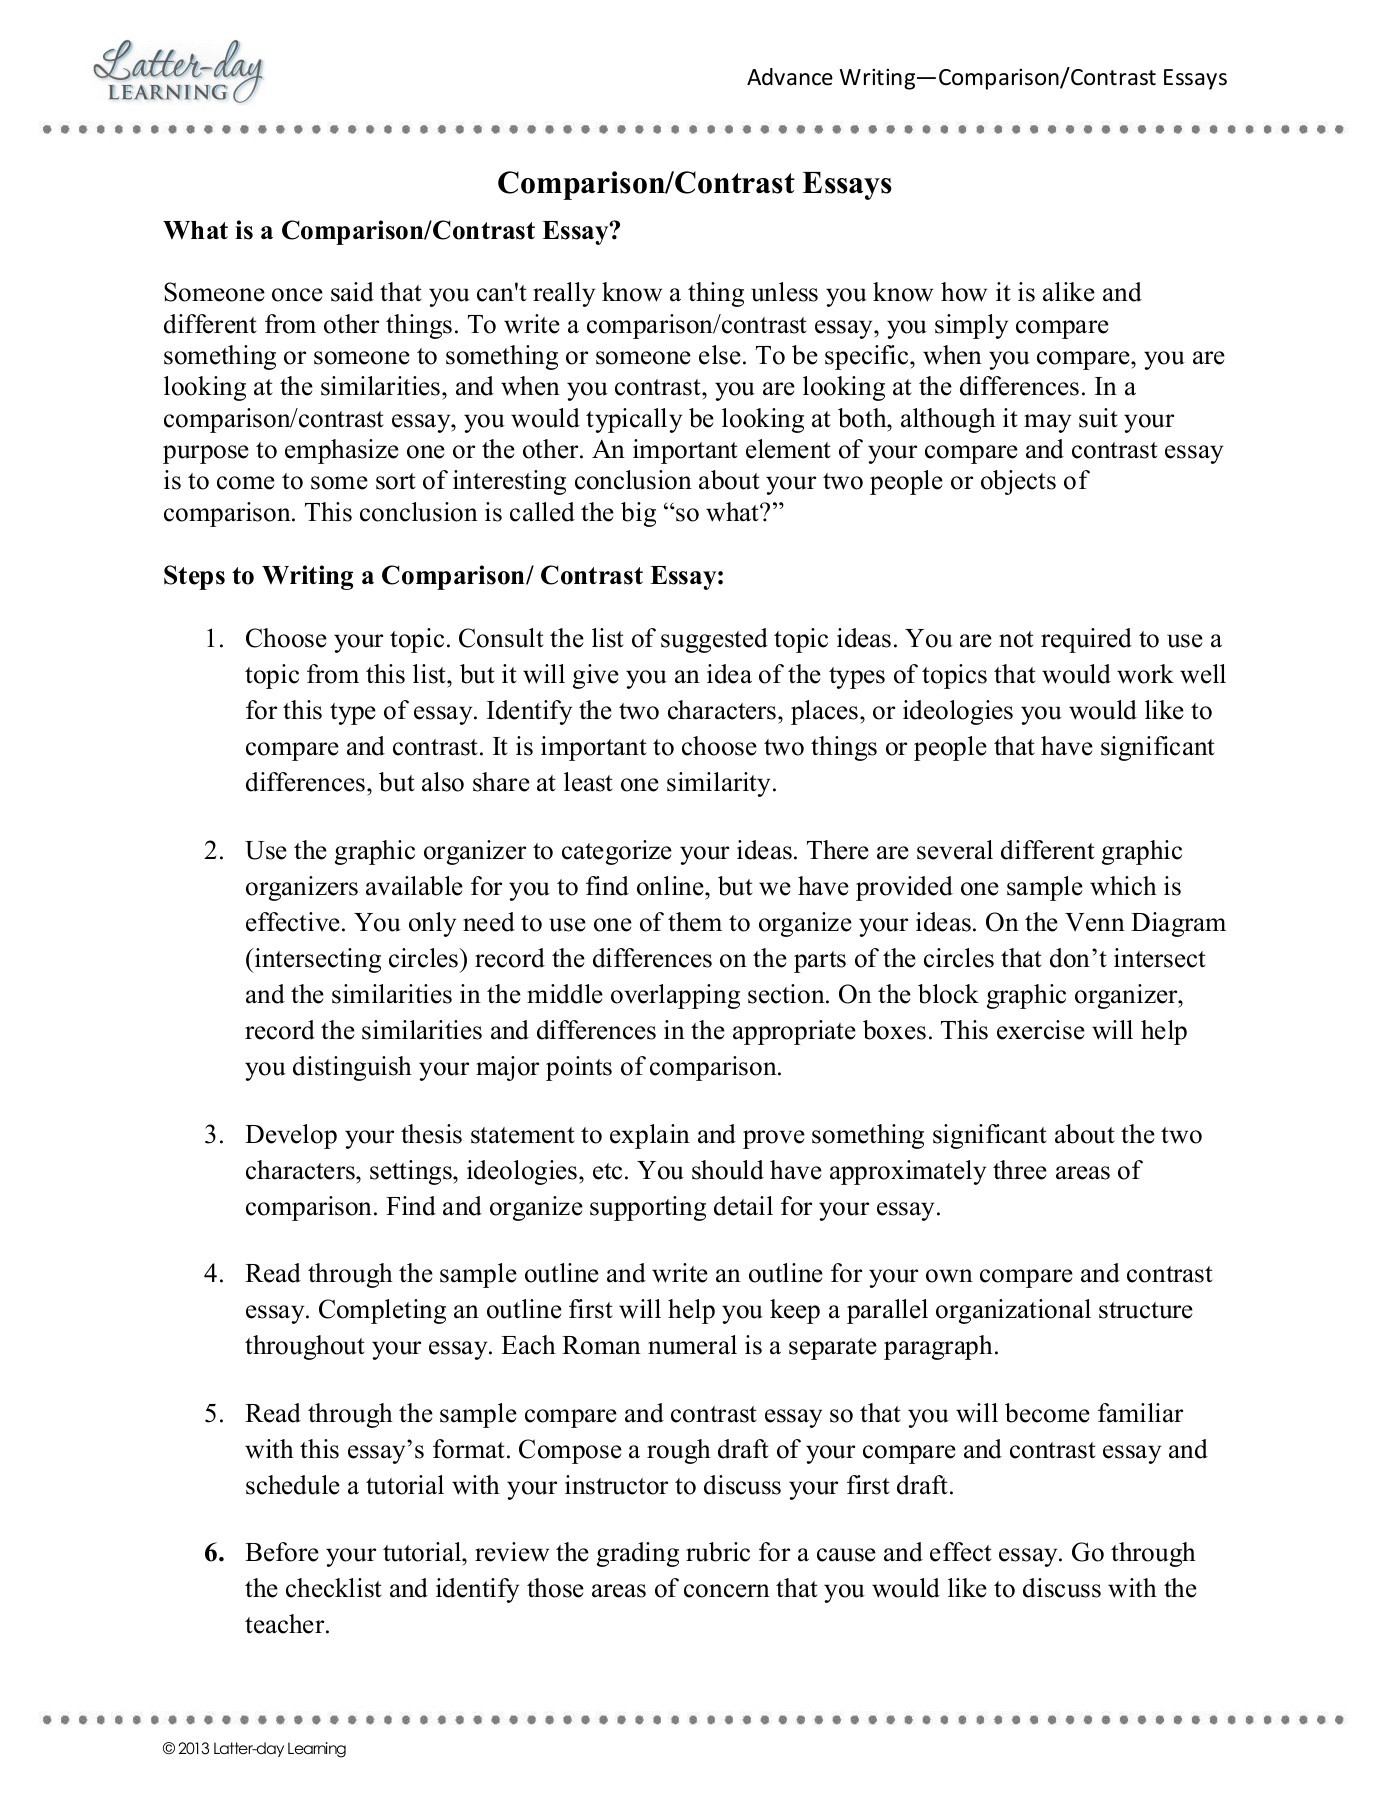 022 Essay Example How To Outline Compare And Awesome A Contrast Create An For Full